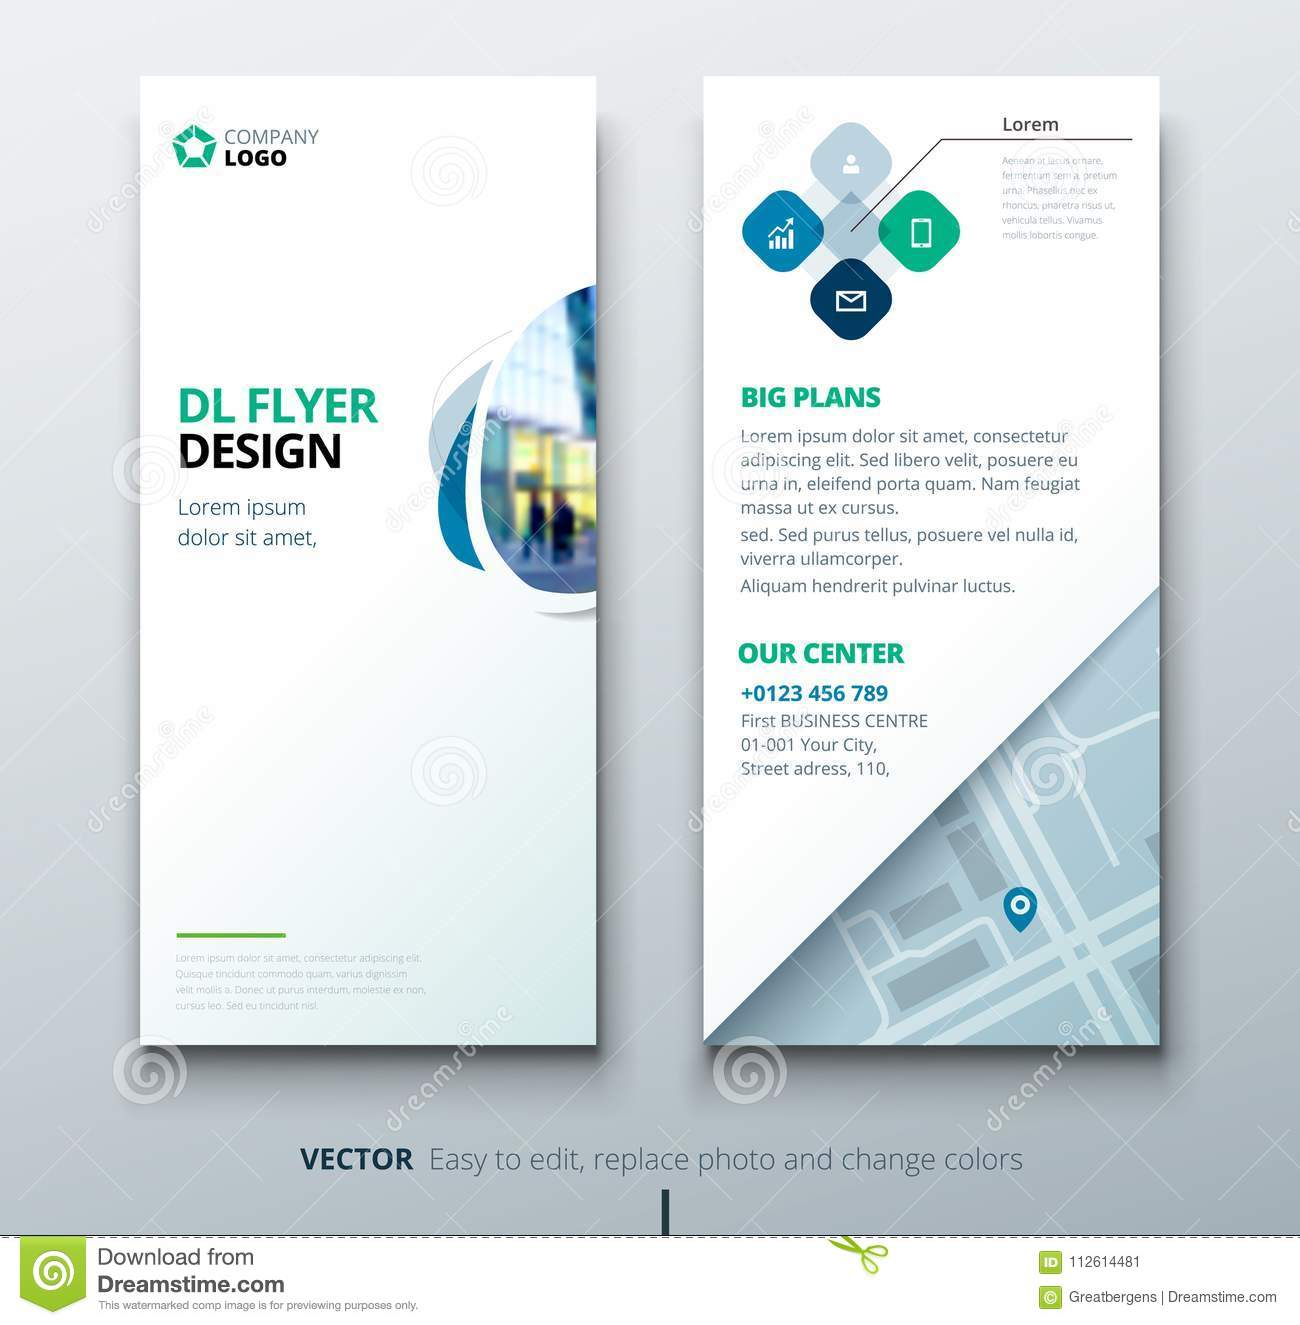 DL Flyer Design. Corporate Business Template For DL Flyer With Color ...